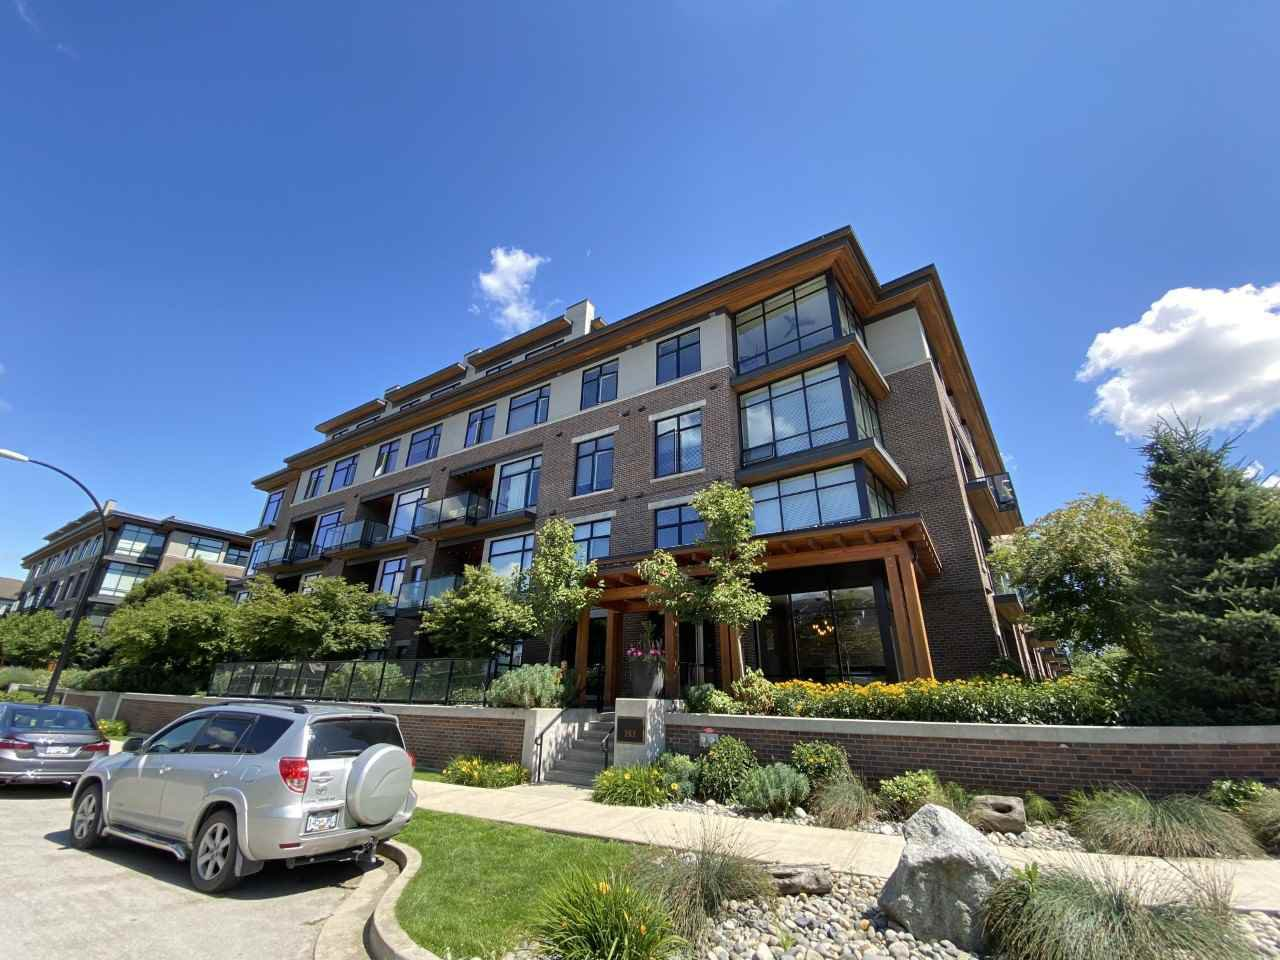 Main Photo: 315 262 SALTER Street in New Westminster: Queensborough Condo for sale : MLS®# R2476476